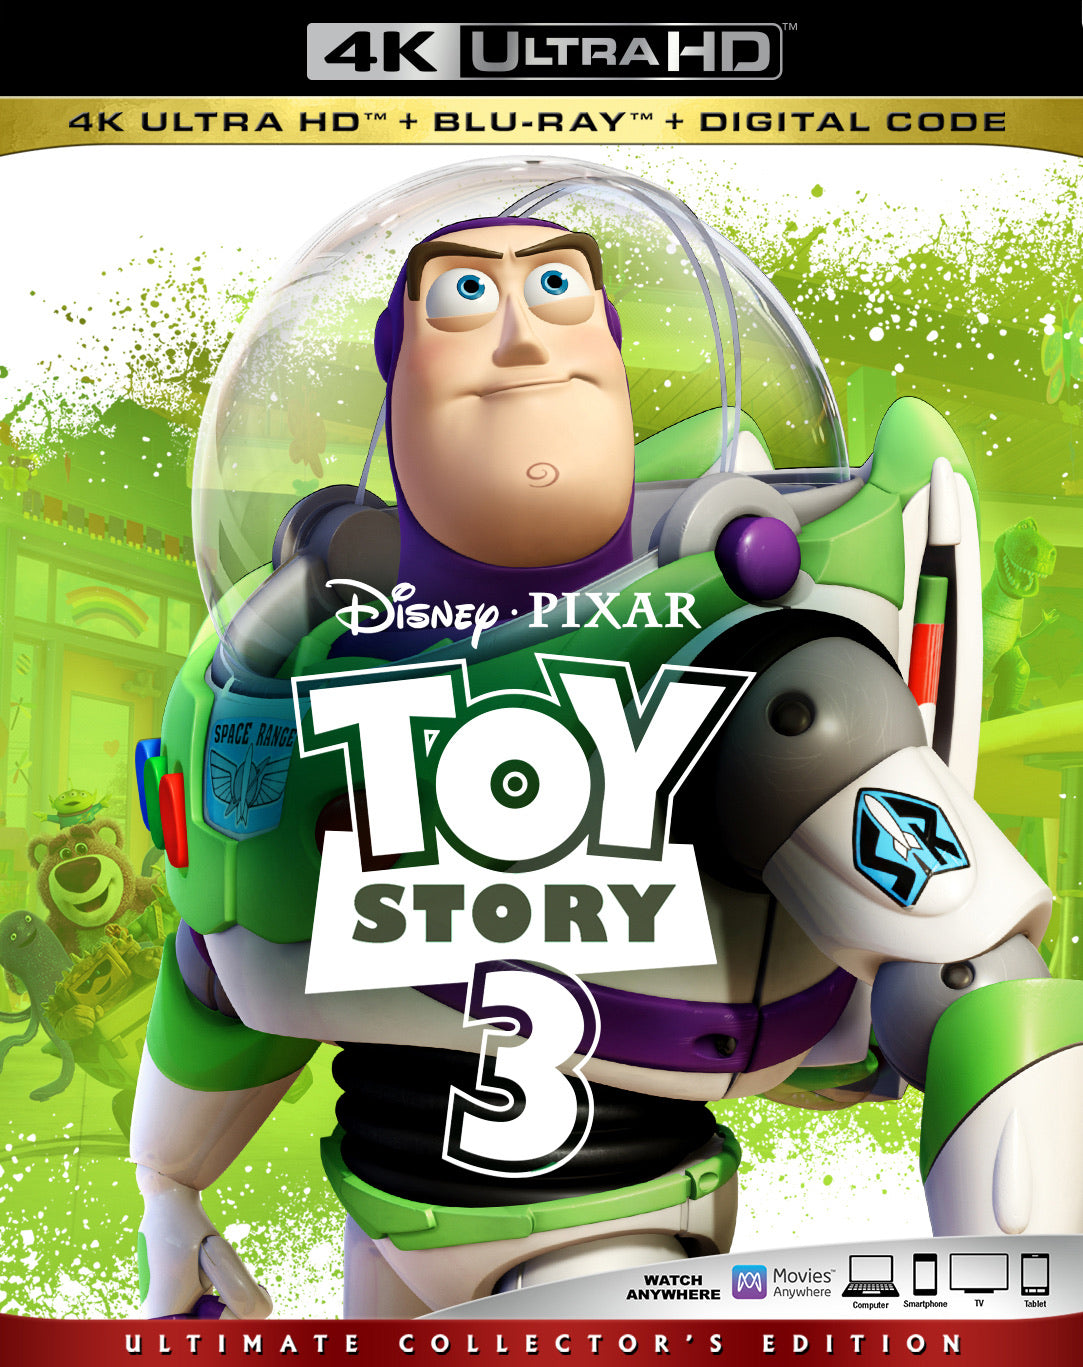 Toy Story 3 (2010: Ports Via MA) iTunes 4K code